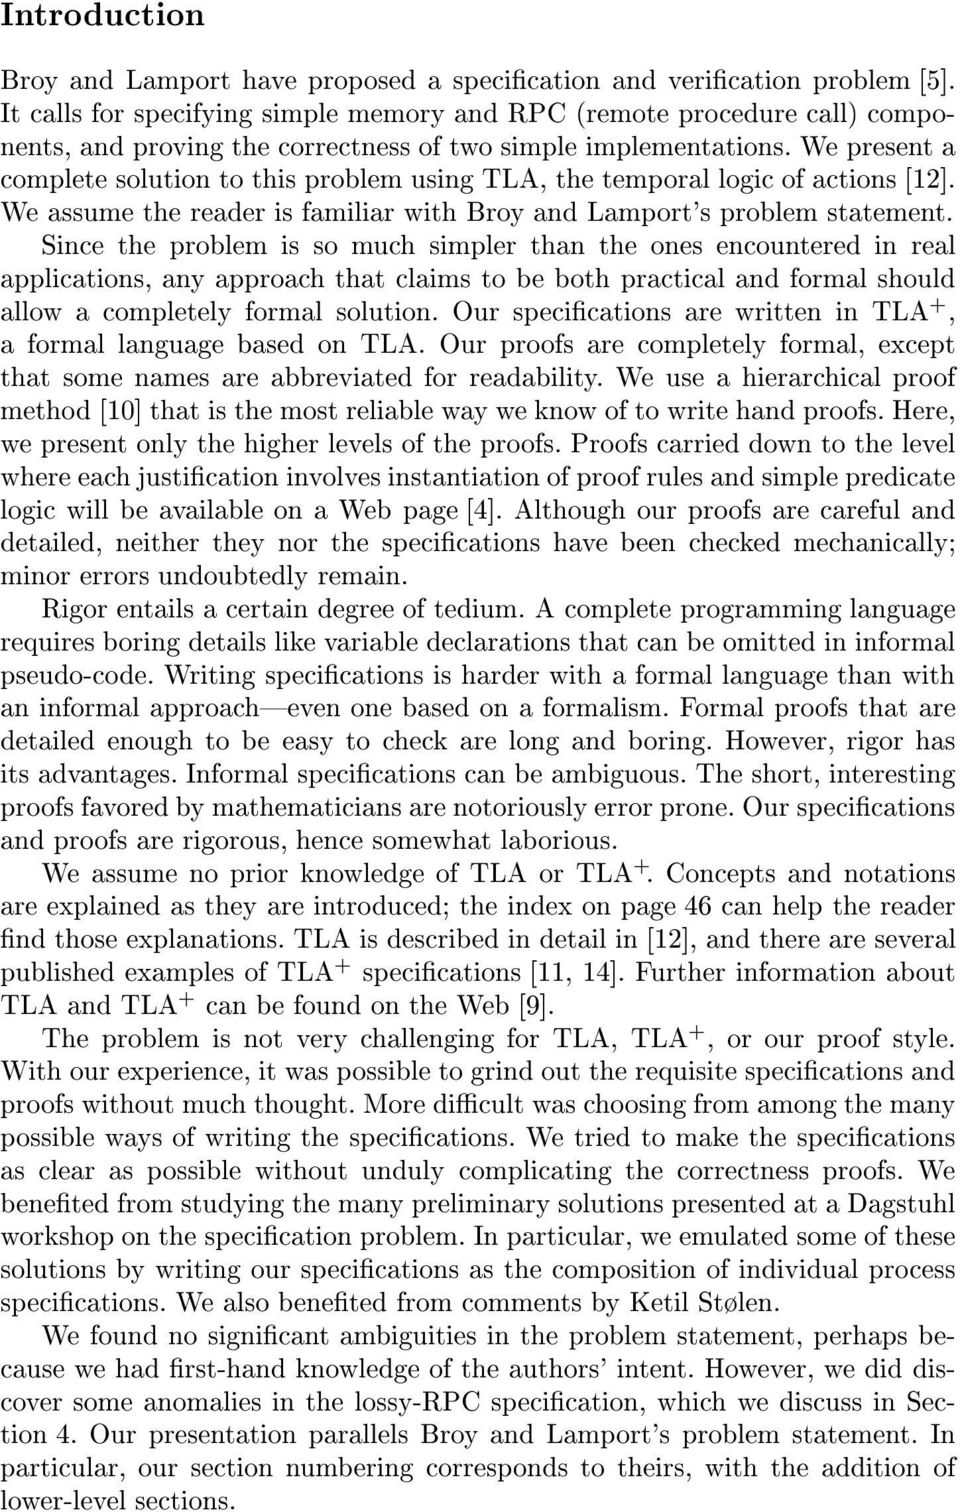 We present a complete solution to this problem using TLA, the temporal logic of actions [12]. We assume the reader is familiar with Broy and Lamport's problem statement.